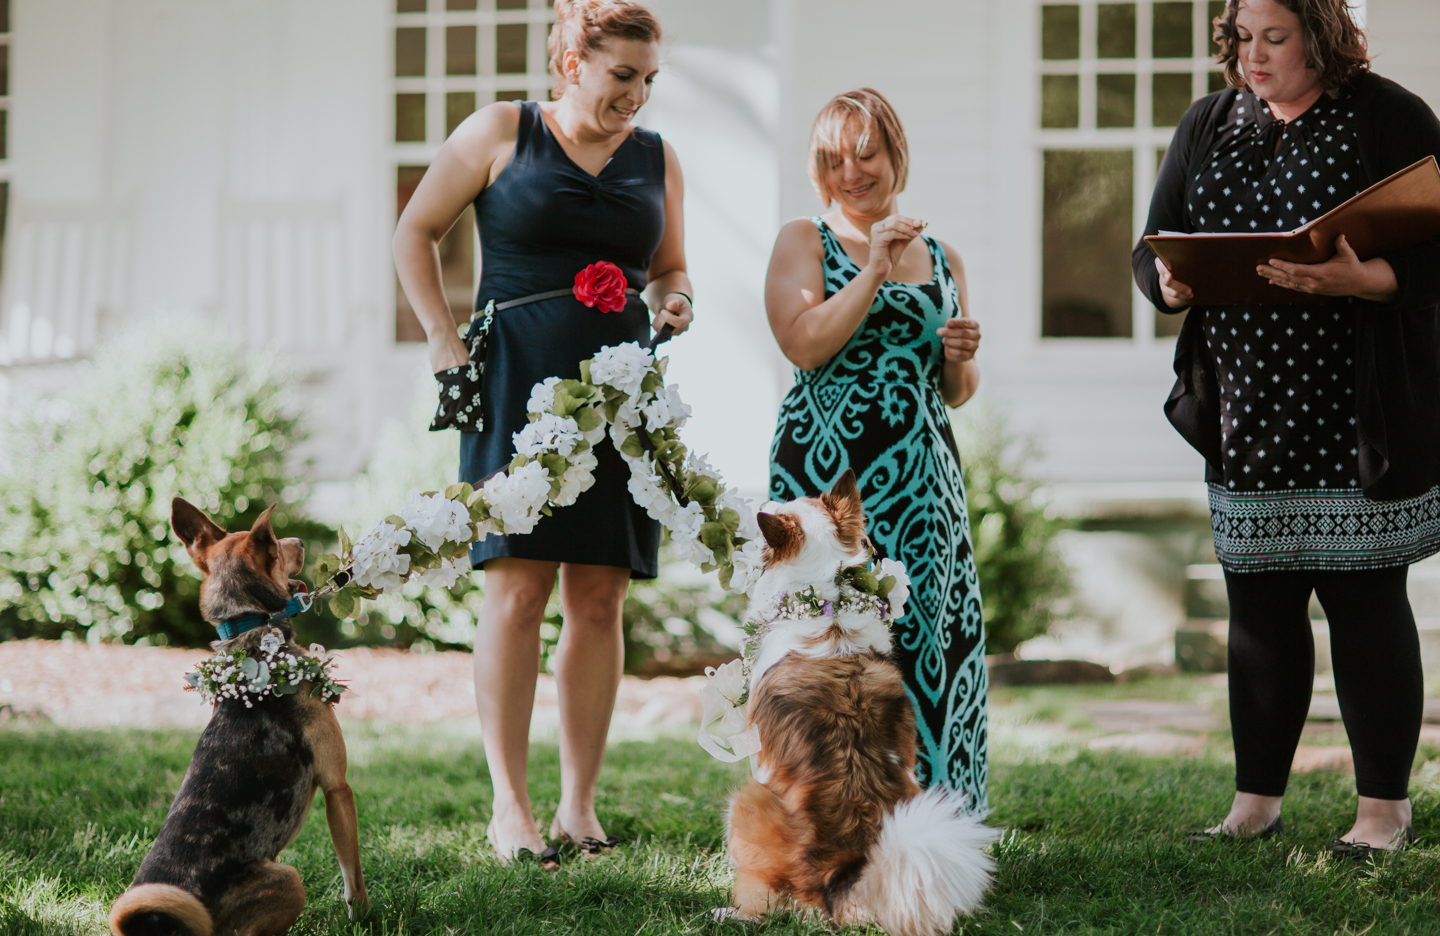 lola-grace-photography-dog-intimate-wedding-16.jpg